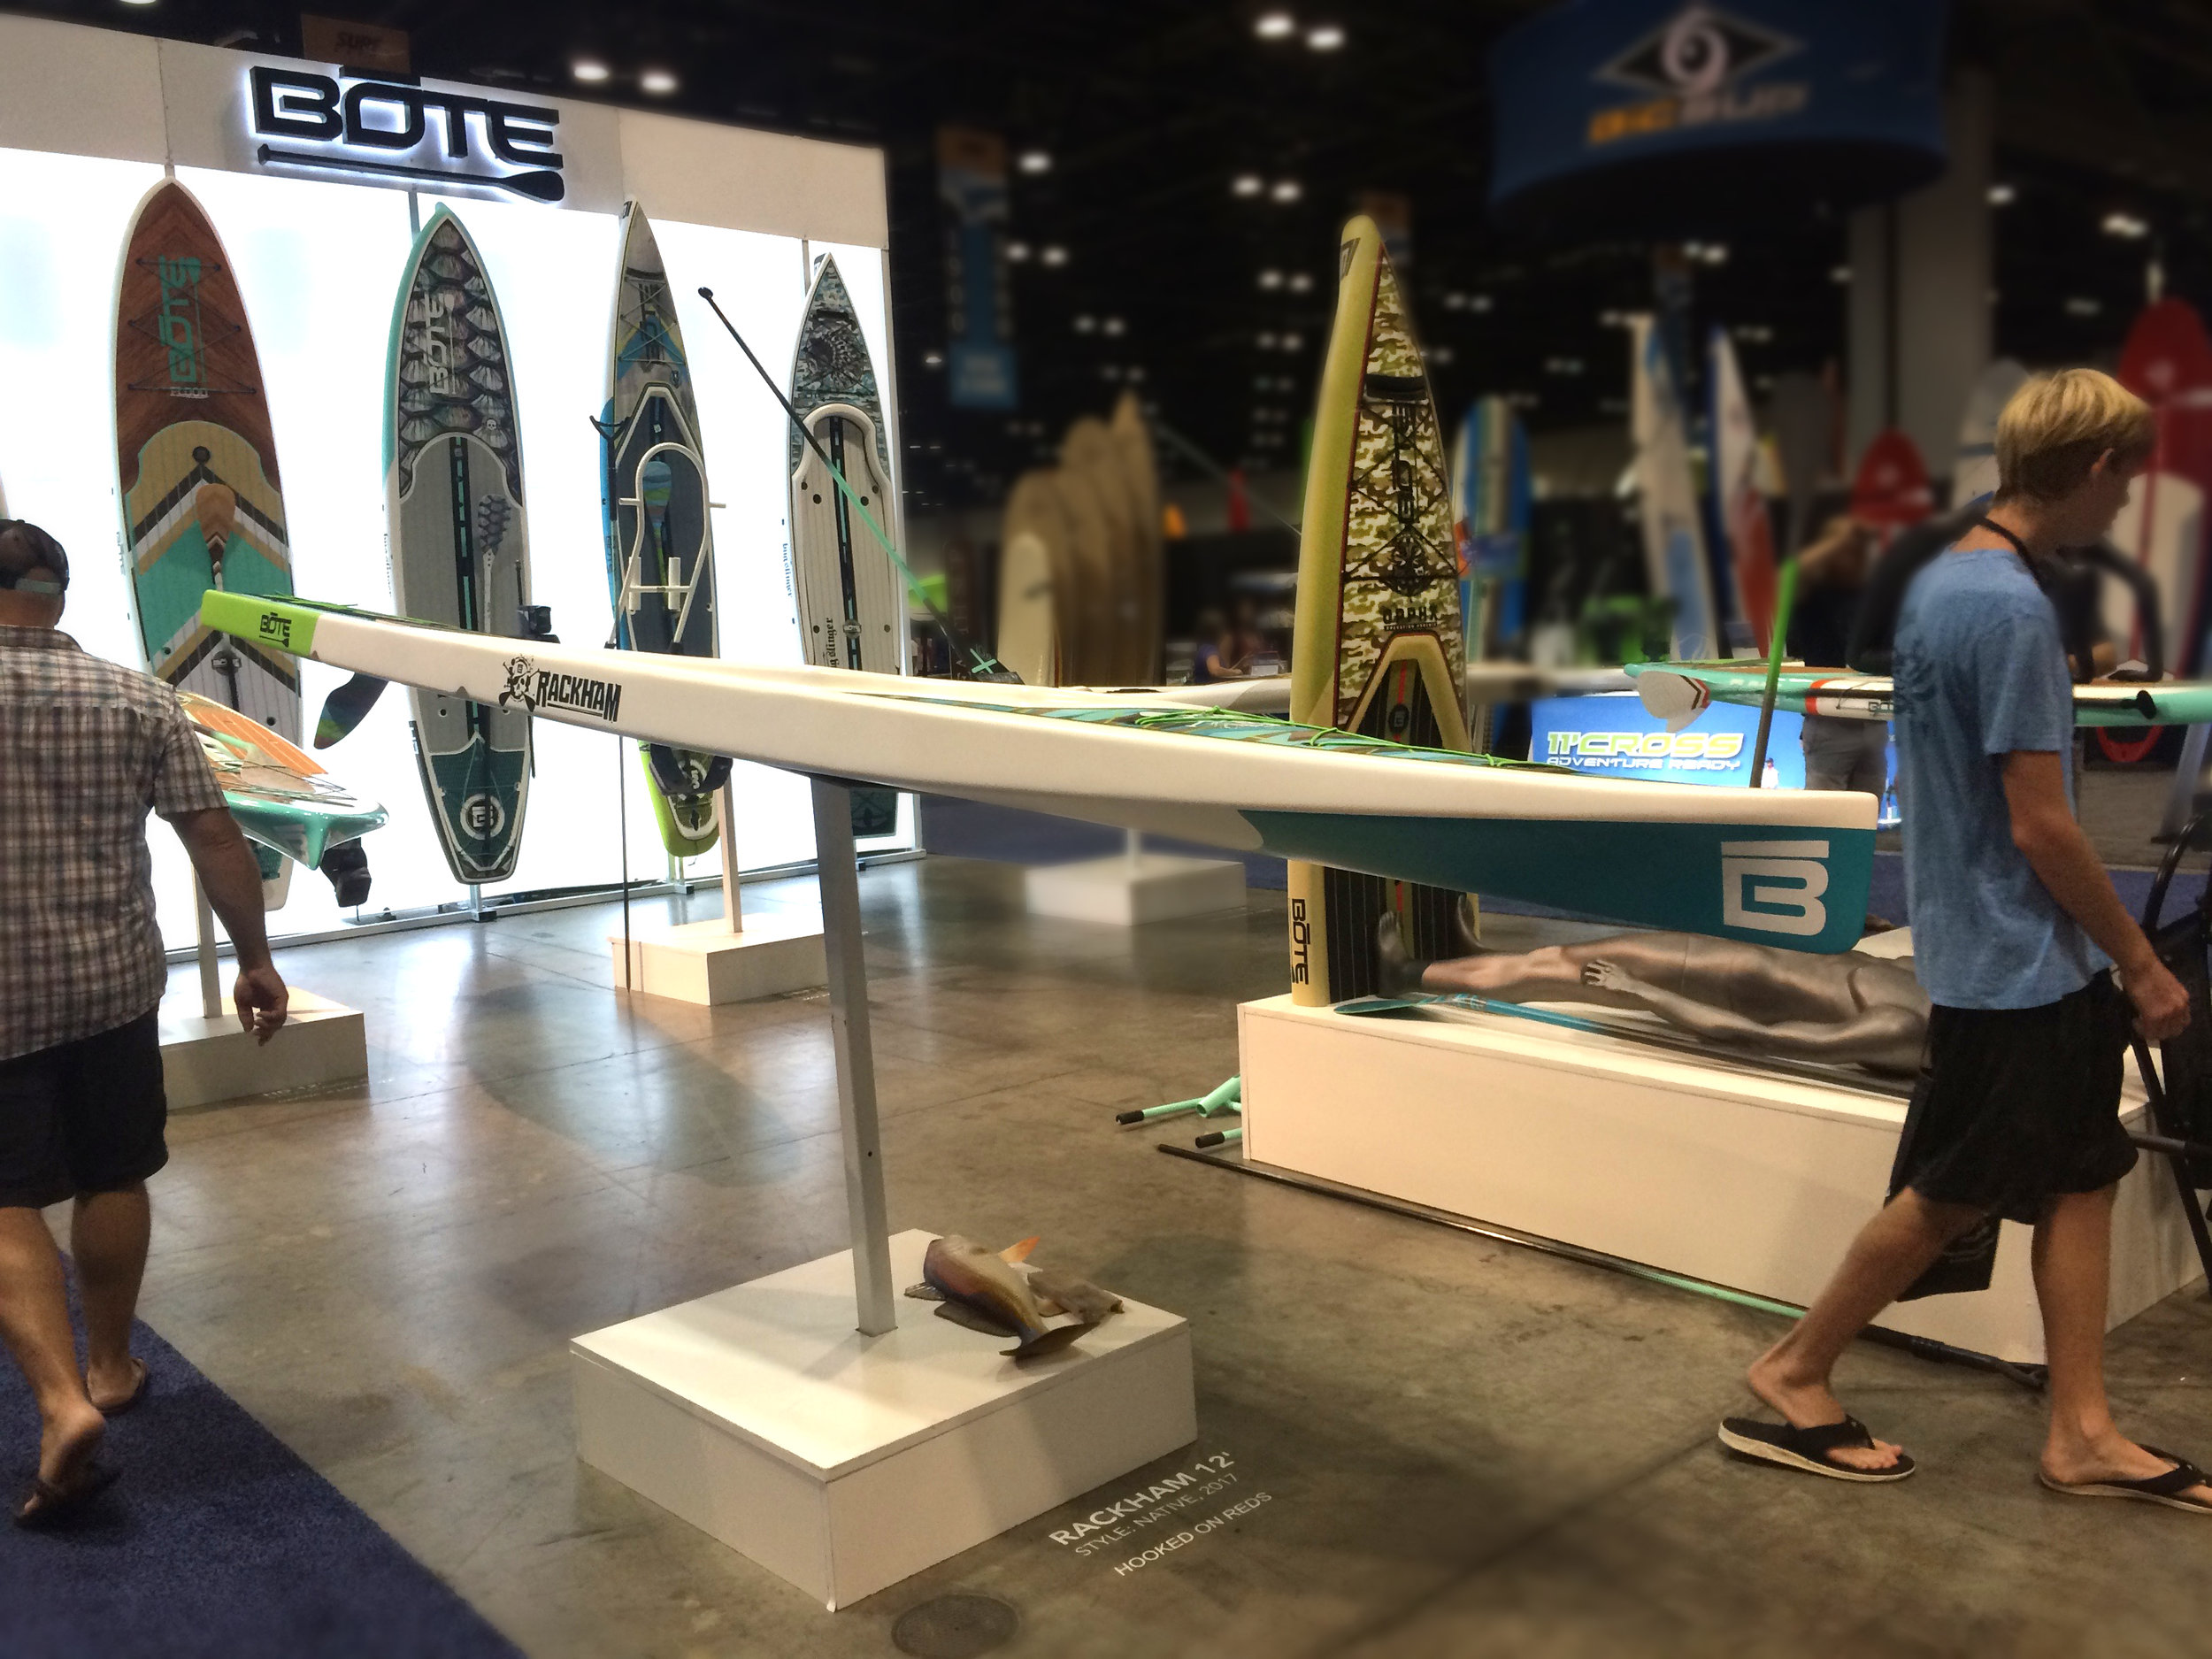 Bote flipped the standard SUP booth and mounted boards horizontally, chopped boards in half and even made a few into tables around the booth.